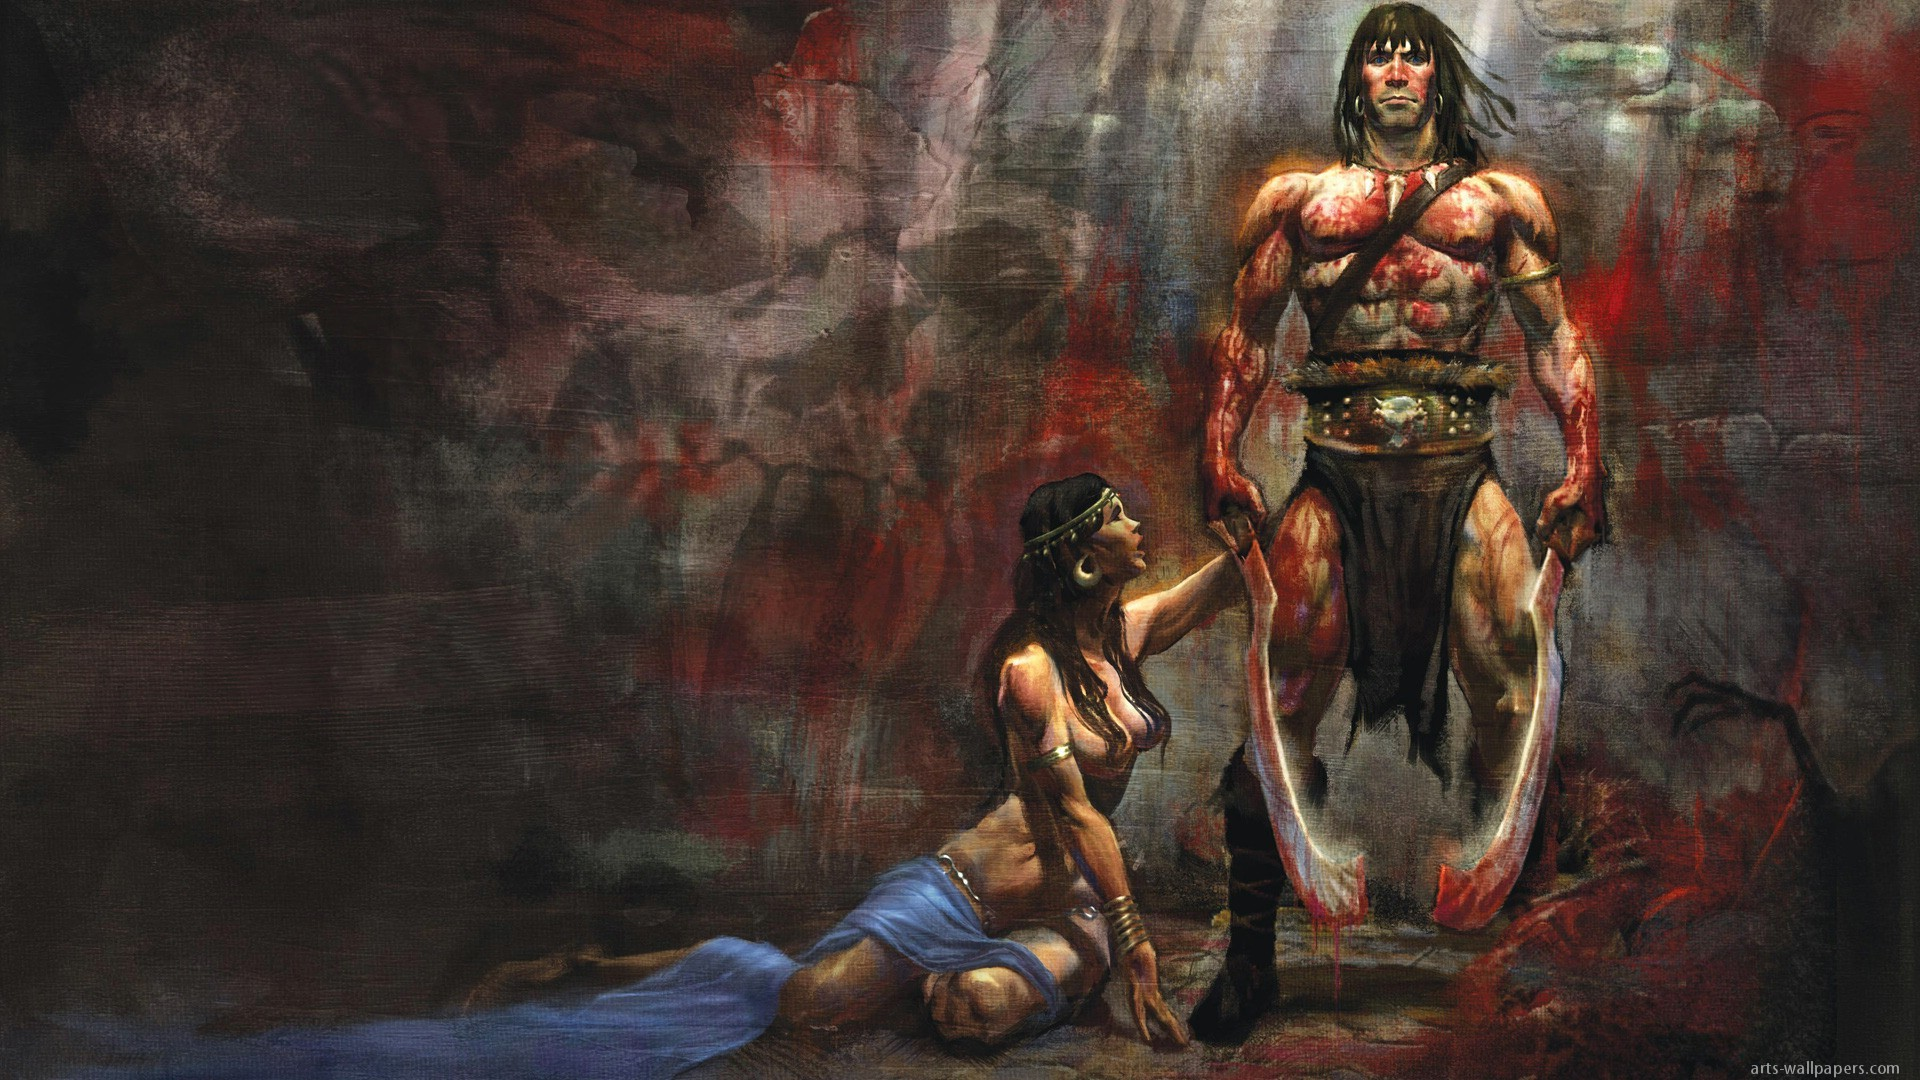 Res: 1920x1080, Conan The Barbarian Computer Wallpapers, Desktop Backgrounds